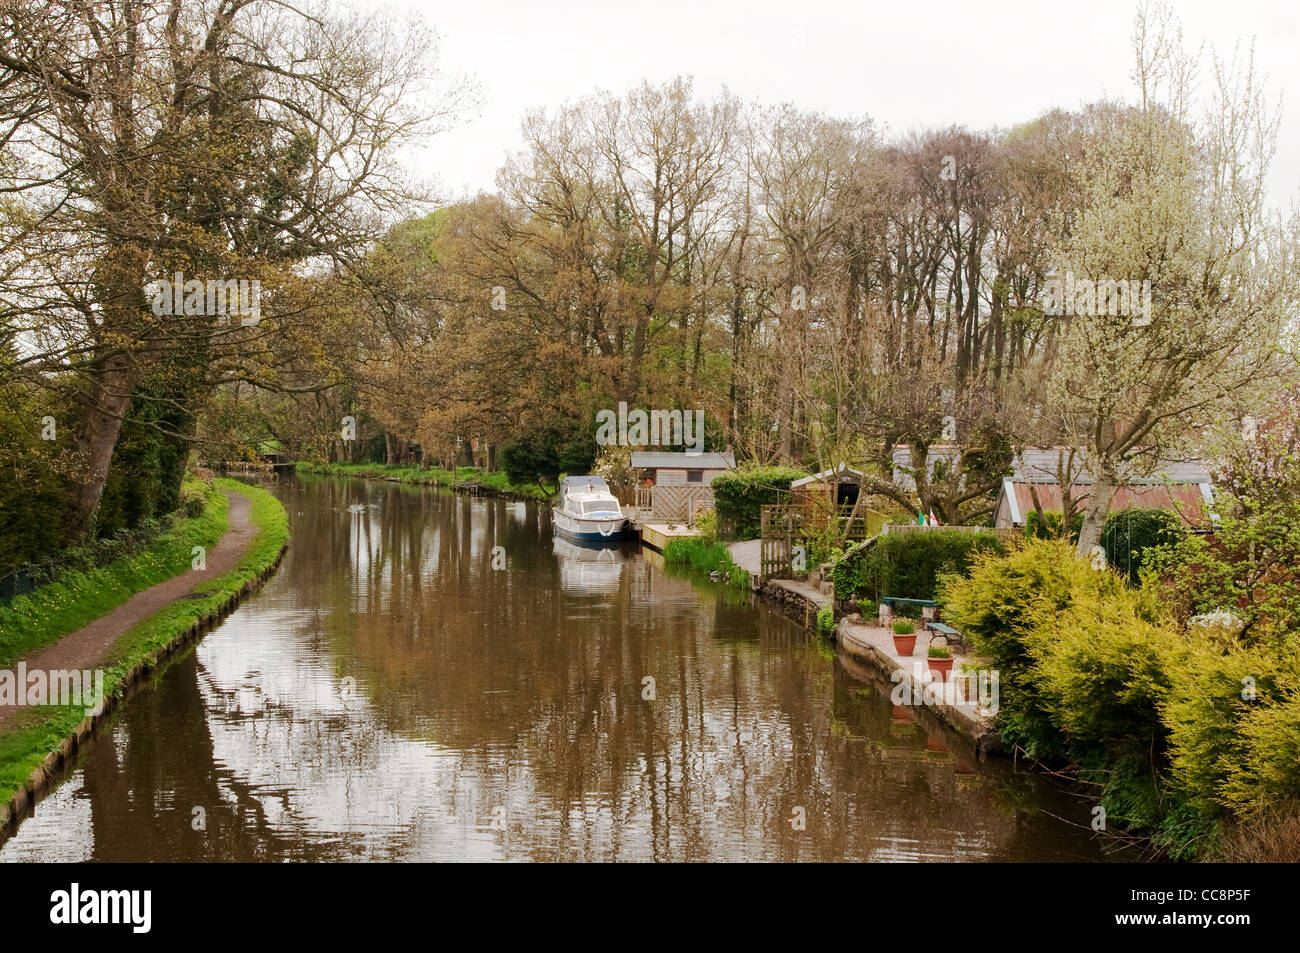 Waterside Gardens Stock Photos & Waterside Gardens Stock Images - Alamy